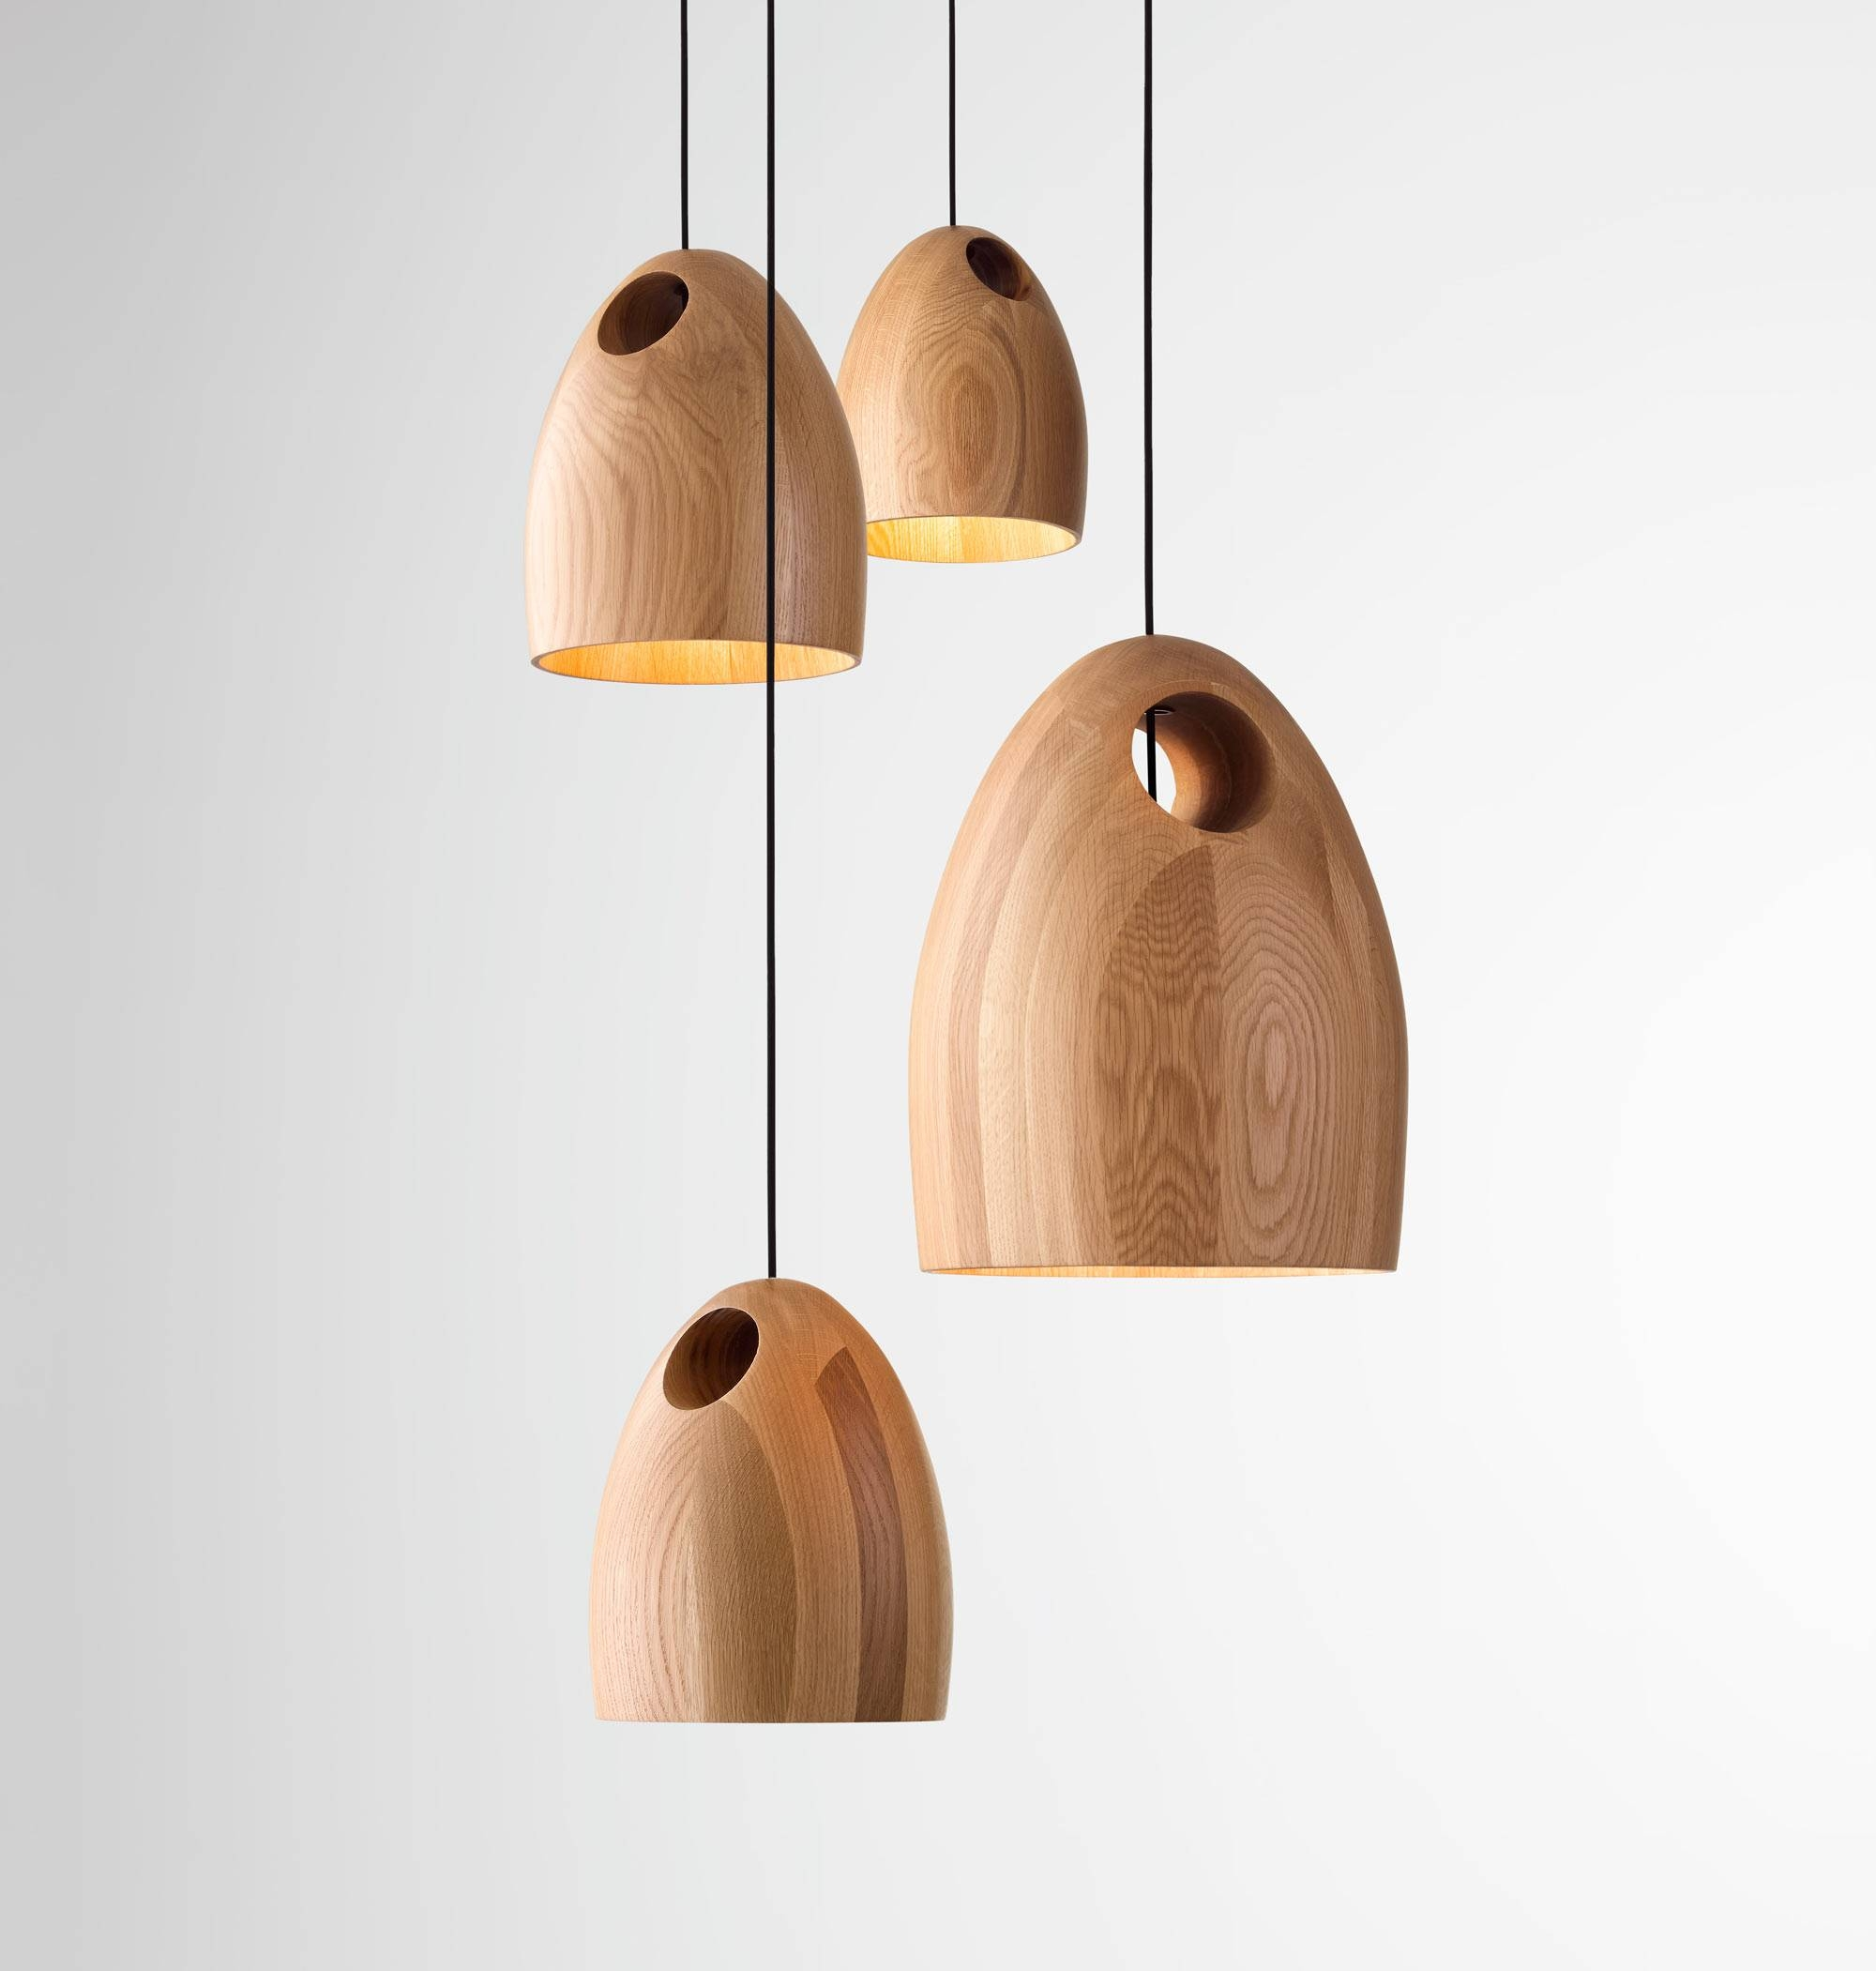 Oak Pendant Light | Ross Gardam - Melbourne Australia throughout Wooden Pendant Lights Australia (Image 13 of 15)